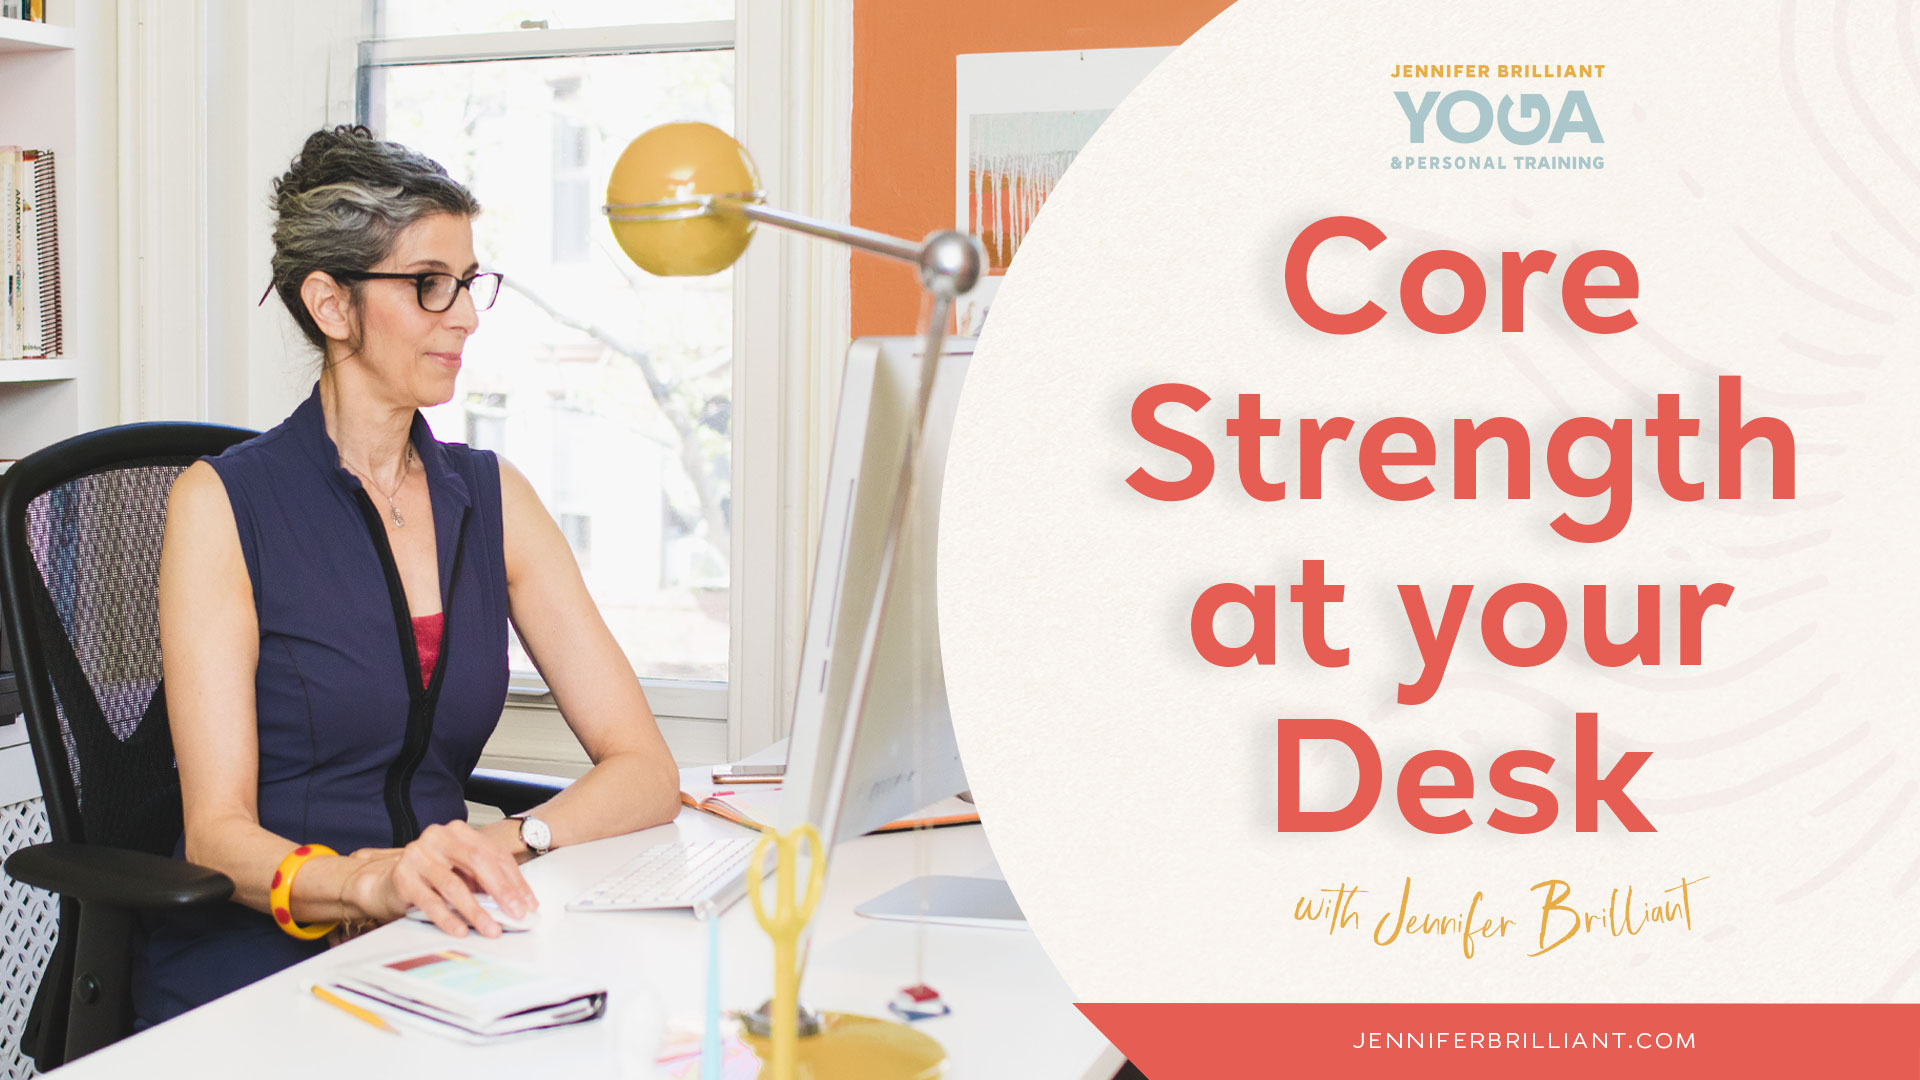 On-Demand Video Yoga Core Strength At Your Desk